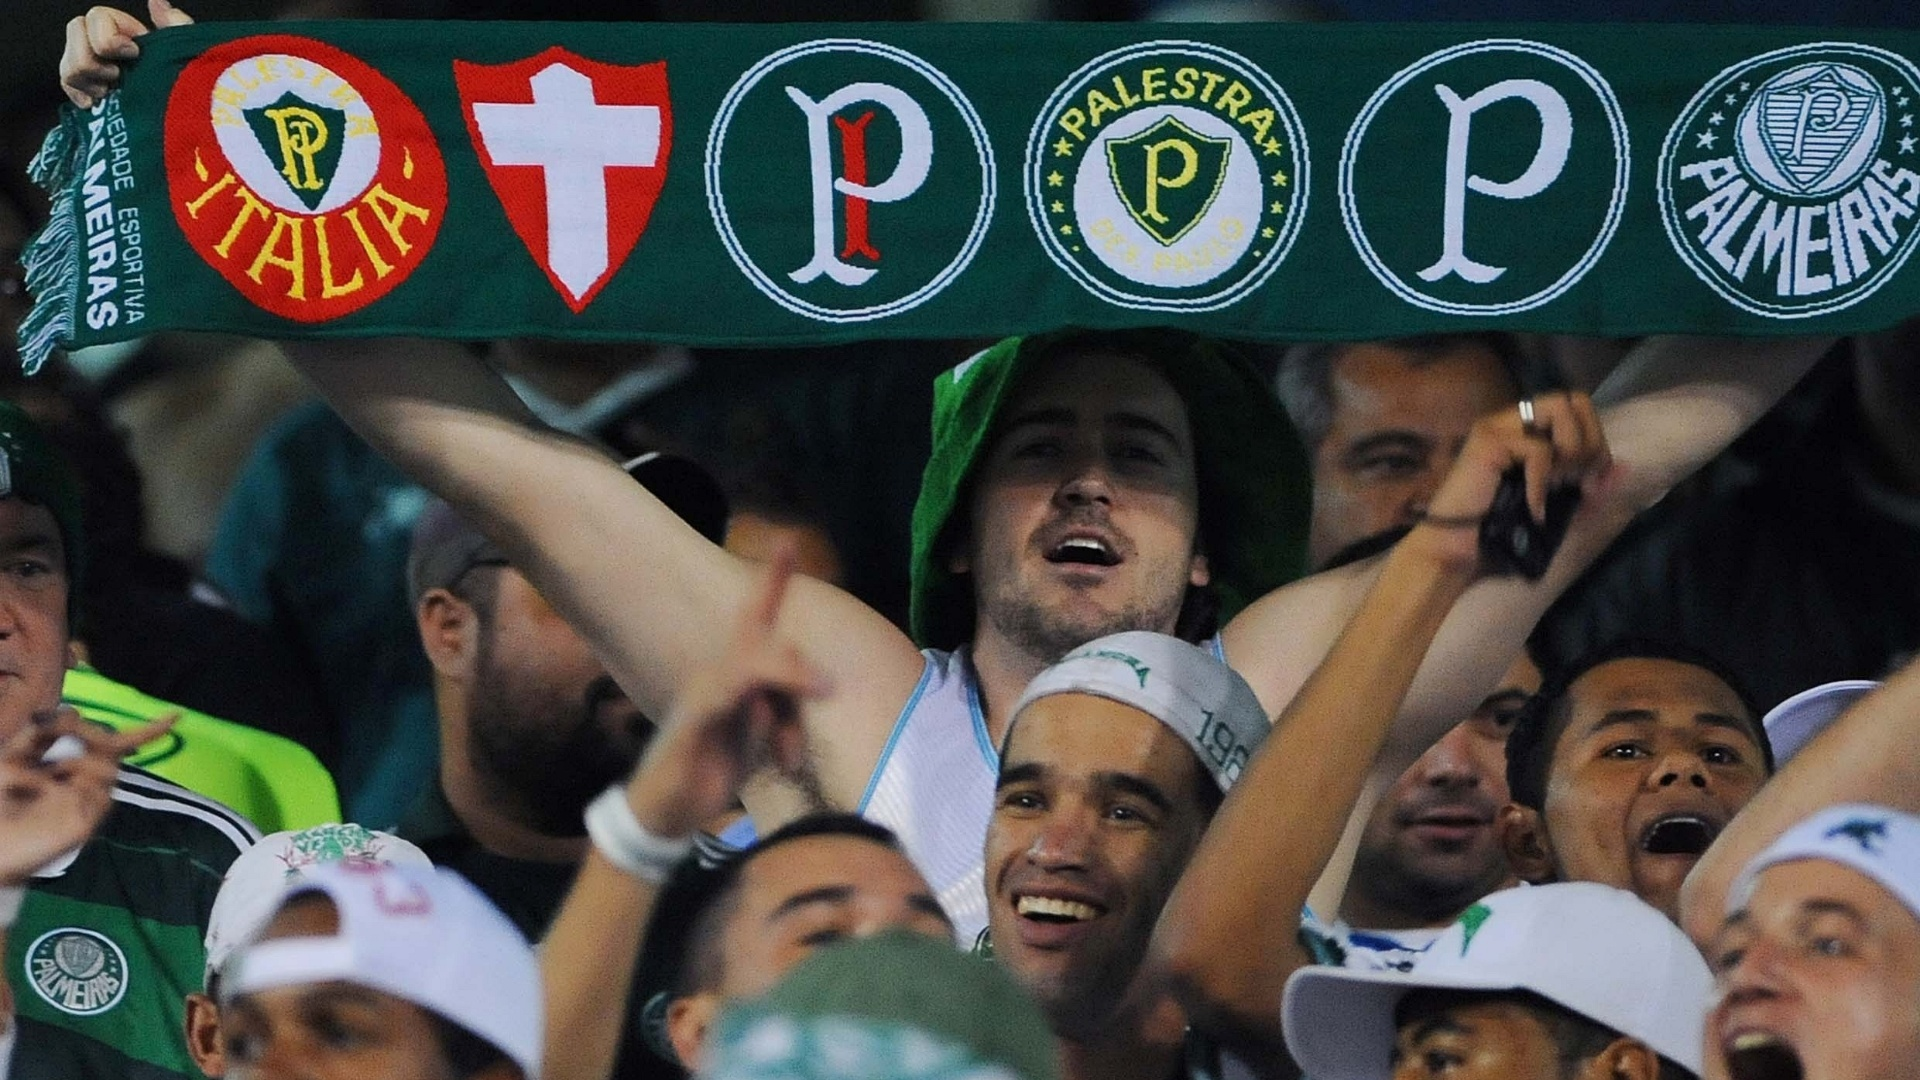 Torcida do Palmeiras marca presena no estdio Olmpico